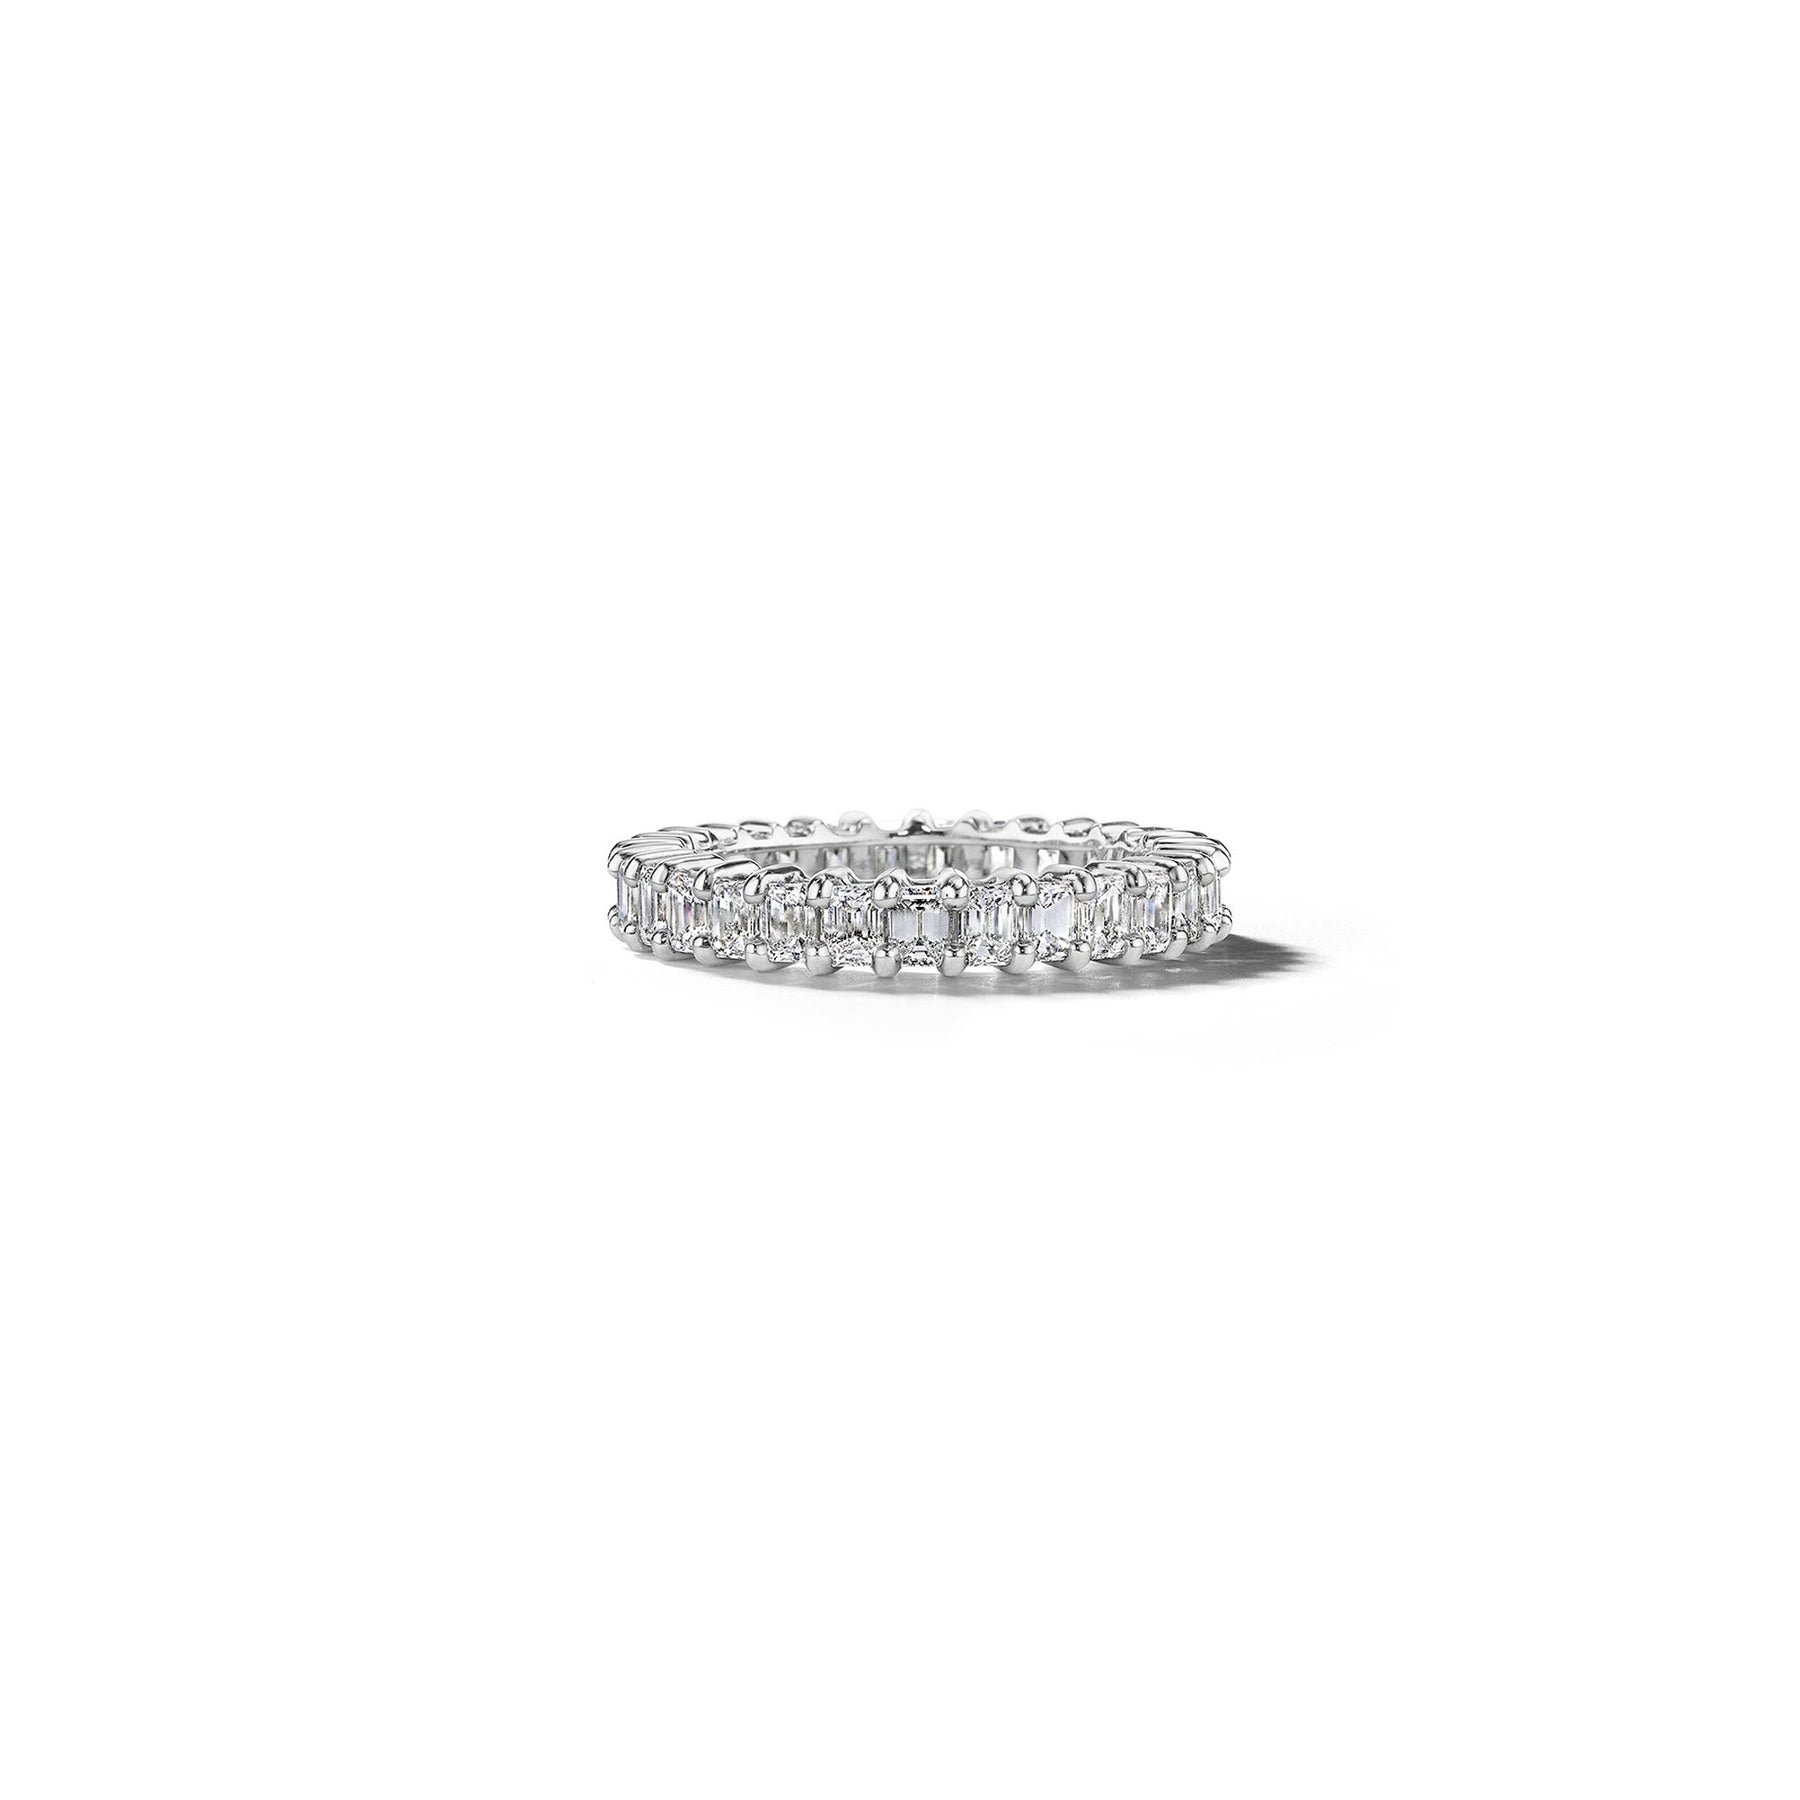 Mimi-So-Bridal-Emerald-Cut-Diamond-Eternity-Band_Platinum